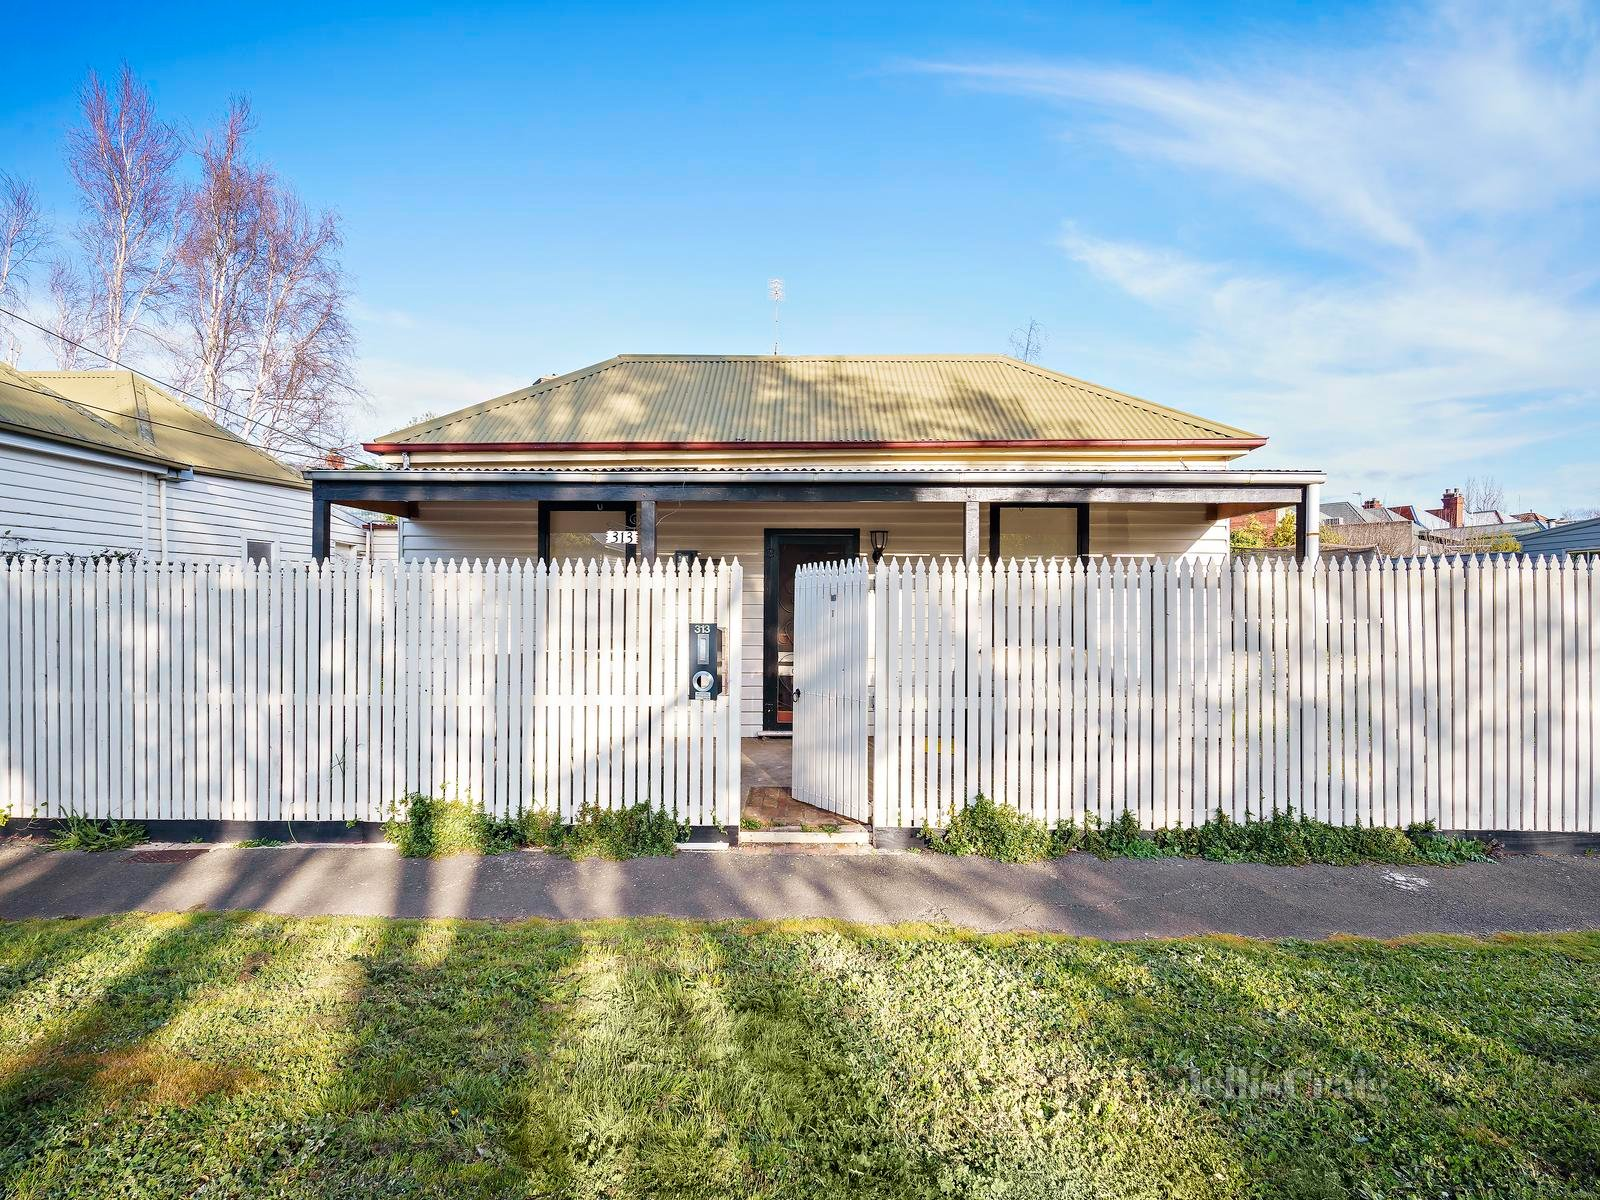 313 Humffray Street South, Golden Point - Print Image 1